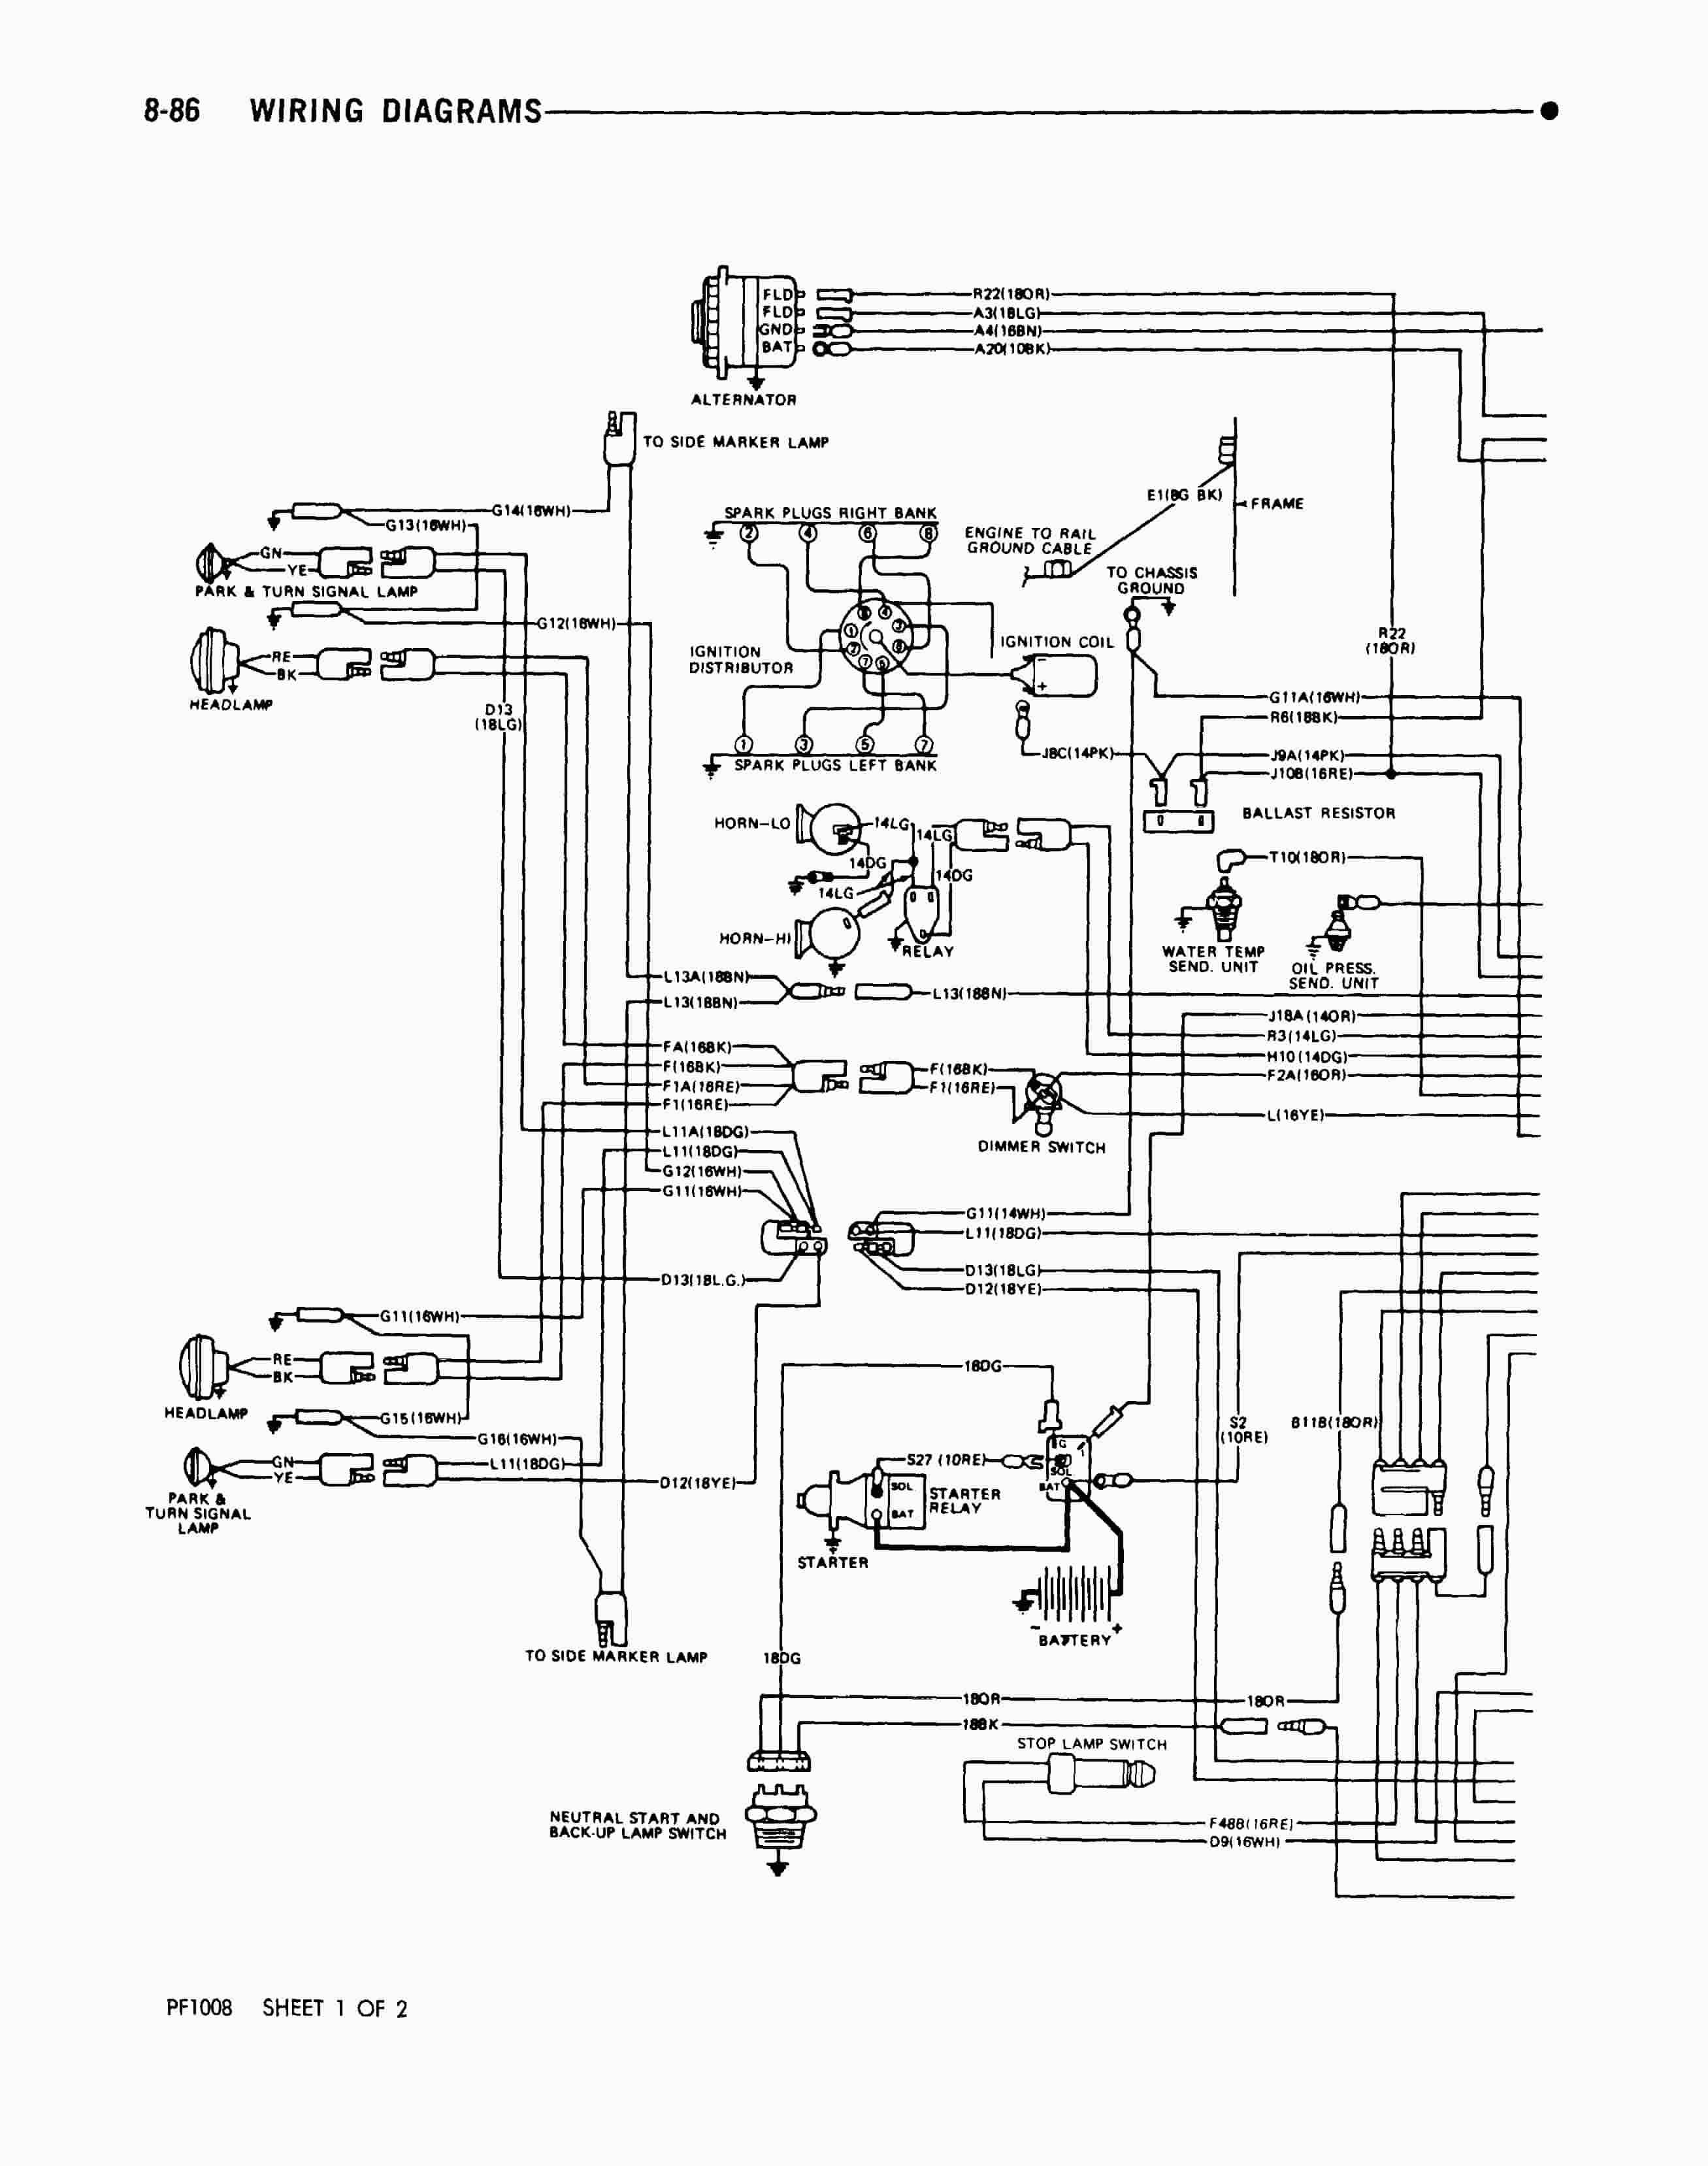 Fleetwood Wiring Diagram Motorhome